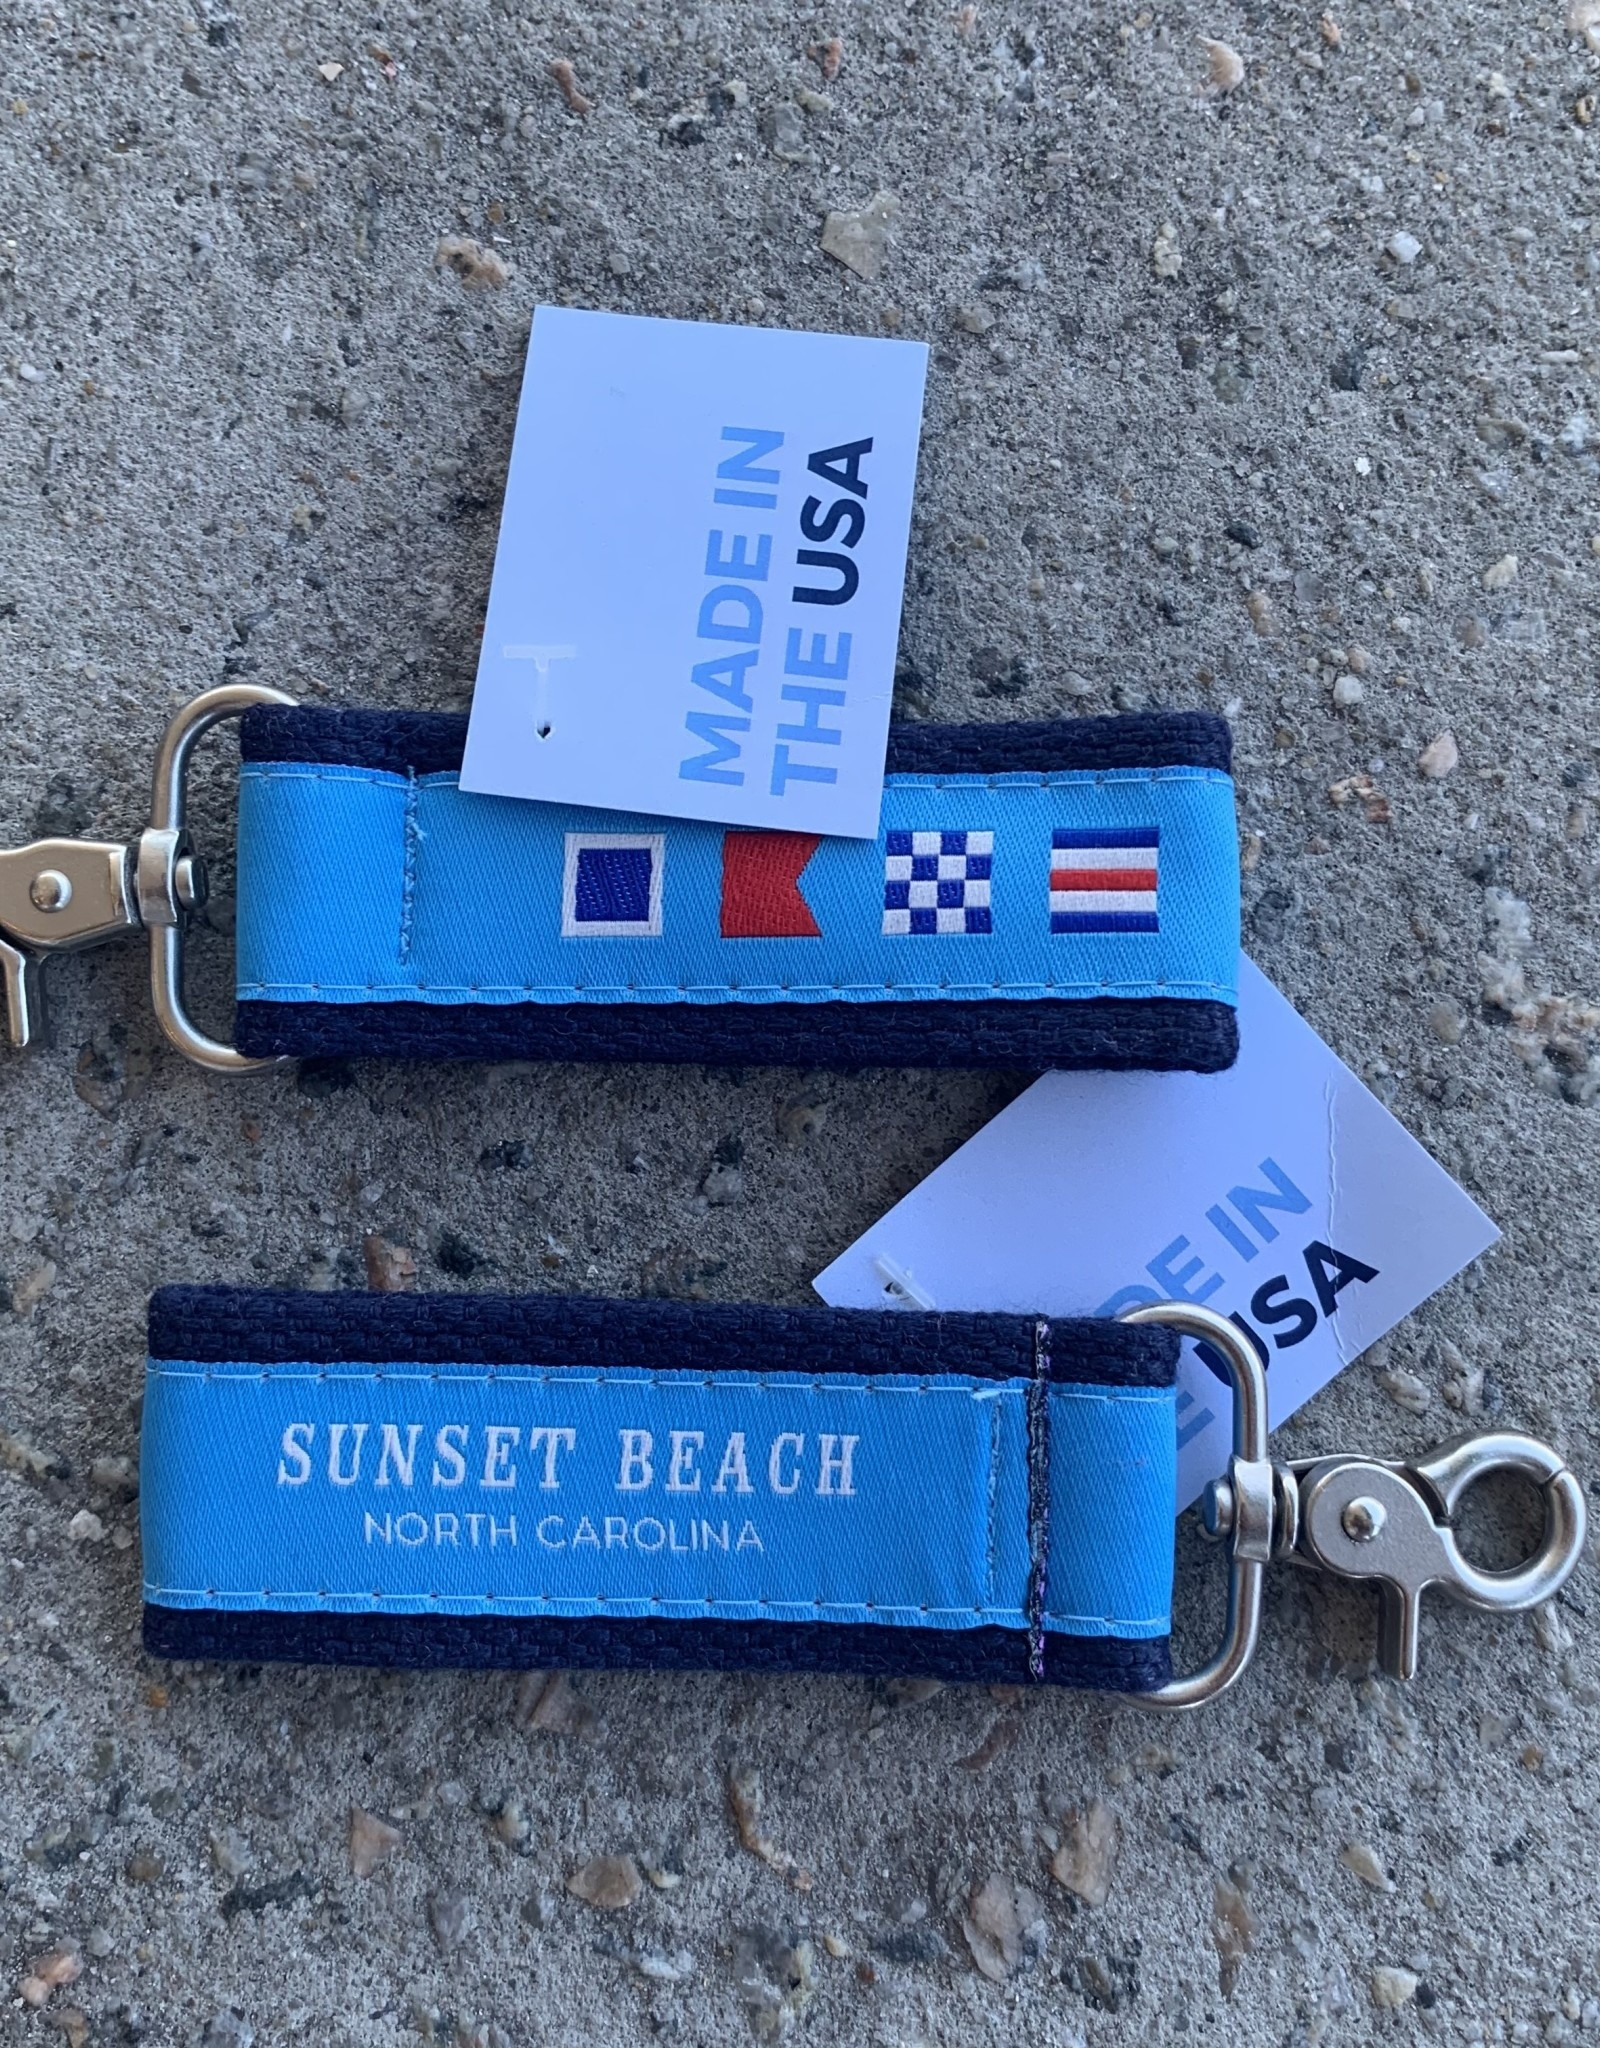 NAUTICAL FLAG SWIVEL KEY STRAP